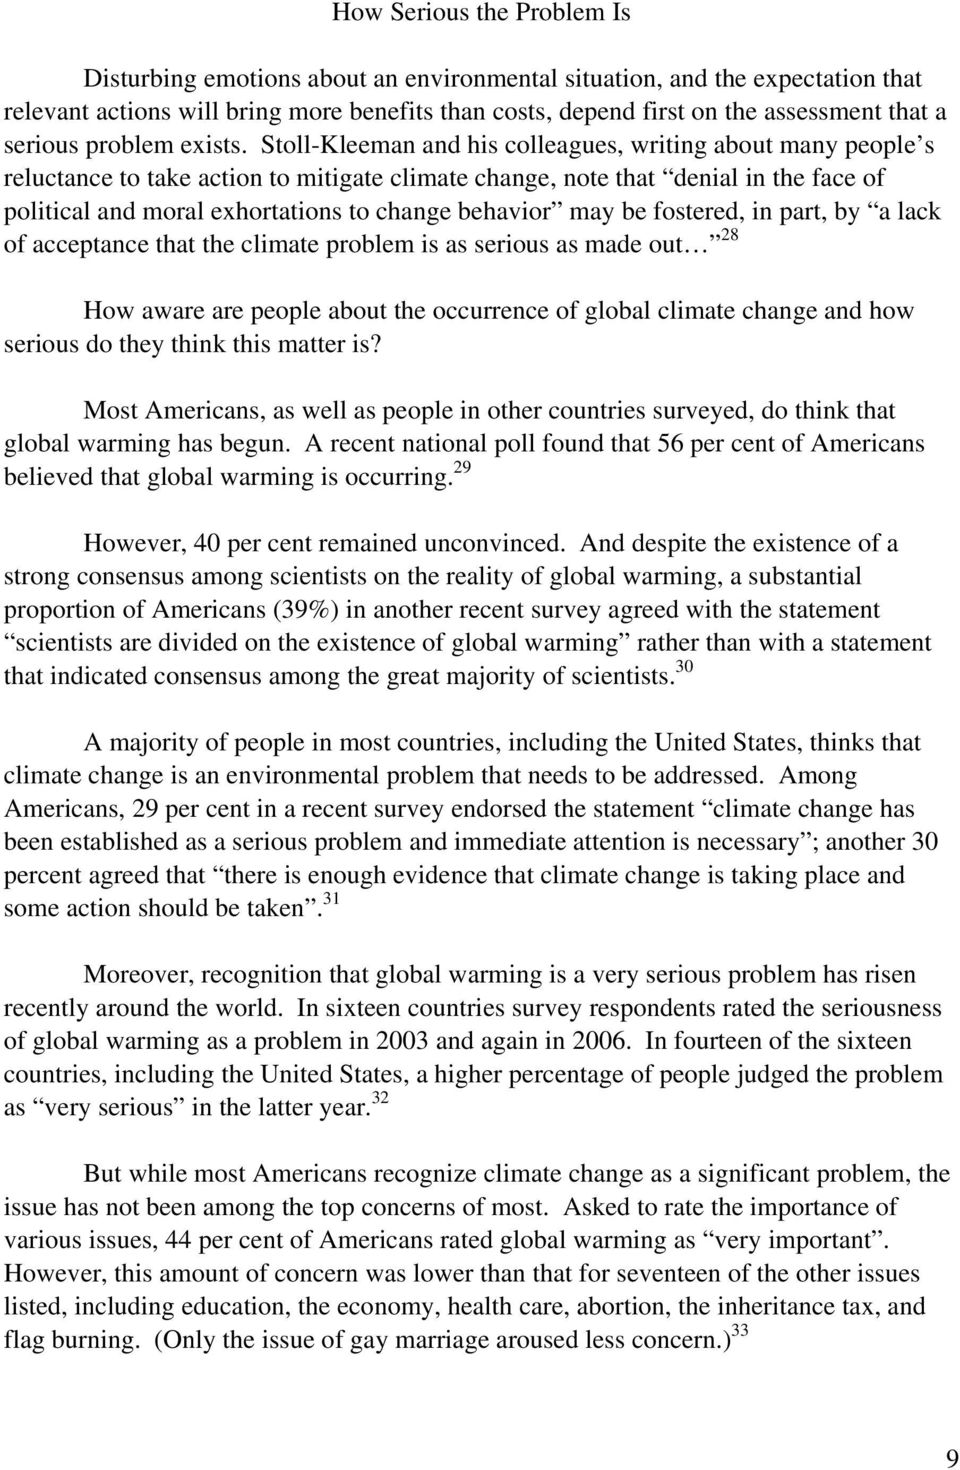 Stoll-Kleeman and his colleagues, writing about many people s reluctance to take action to mitigate climate change, note that denial in the face of political and moral exhortations to change behavior